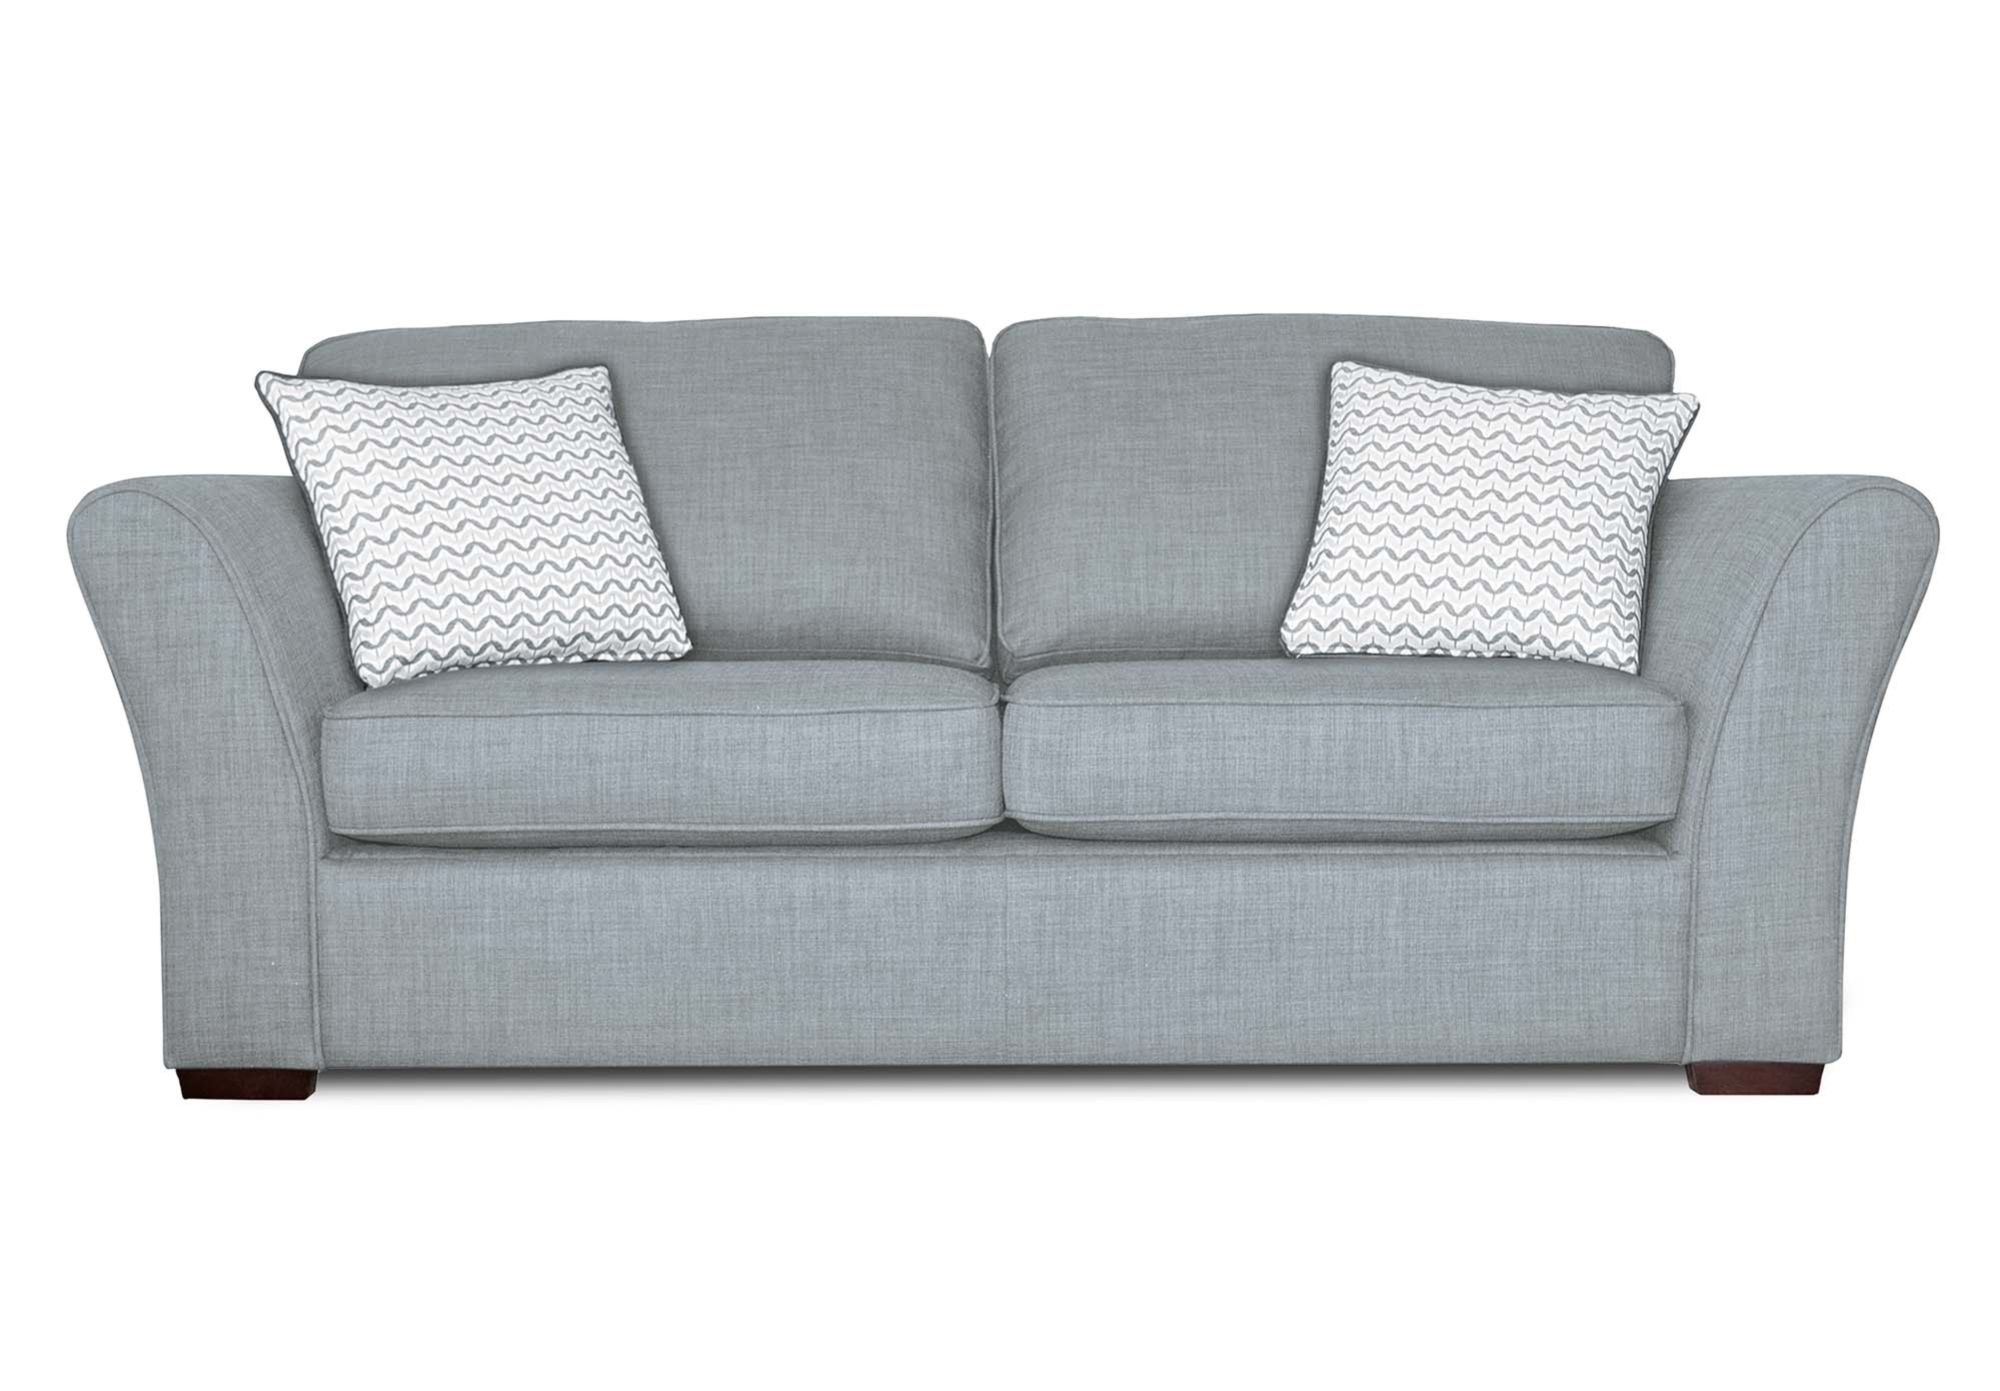 3 Seater Sofa Bed Ultra Furniture Twilight Upholstery At Village Gorgeous Living Room From